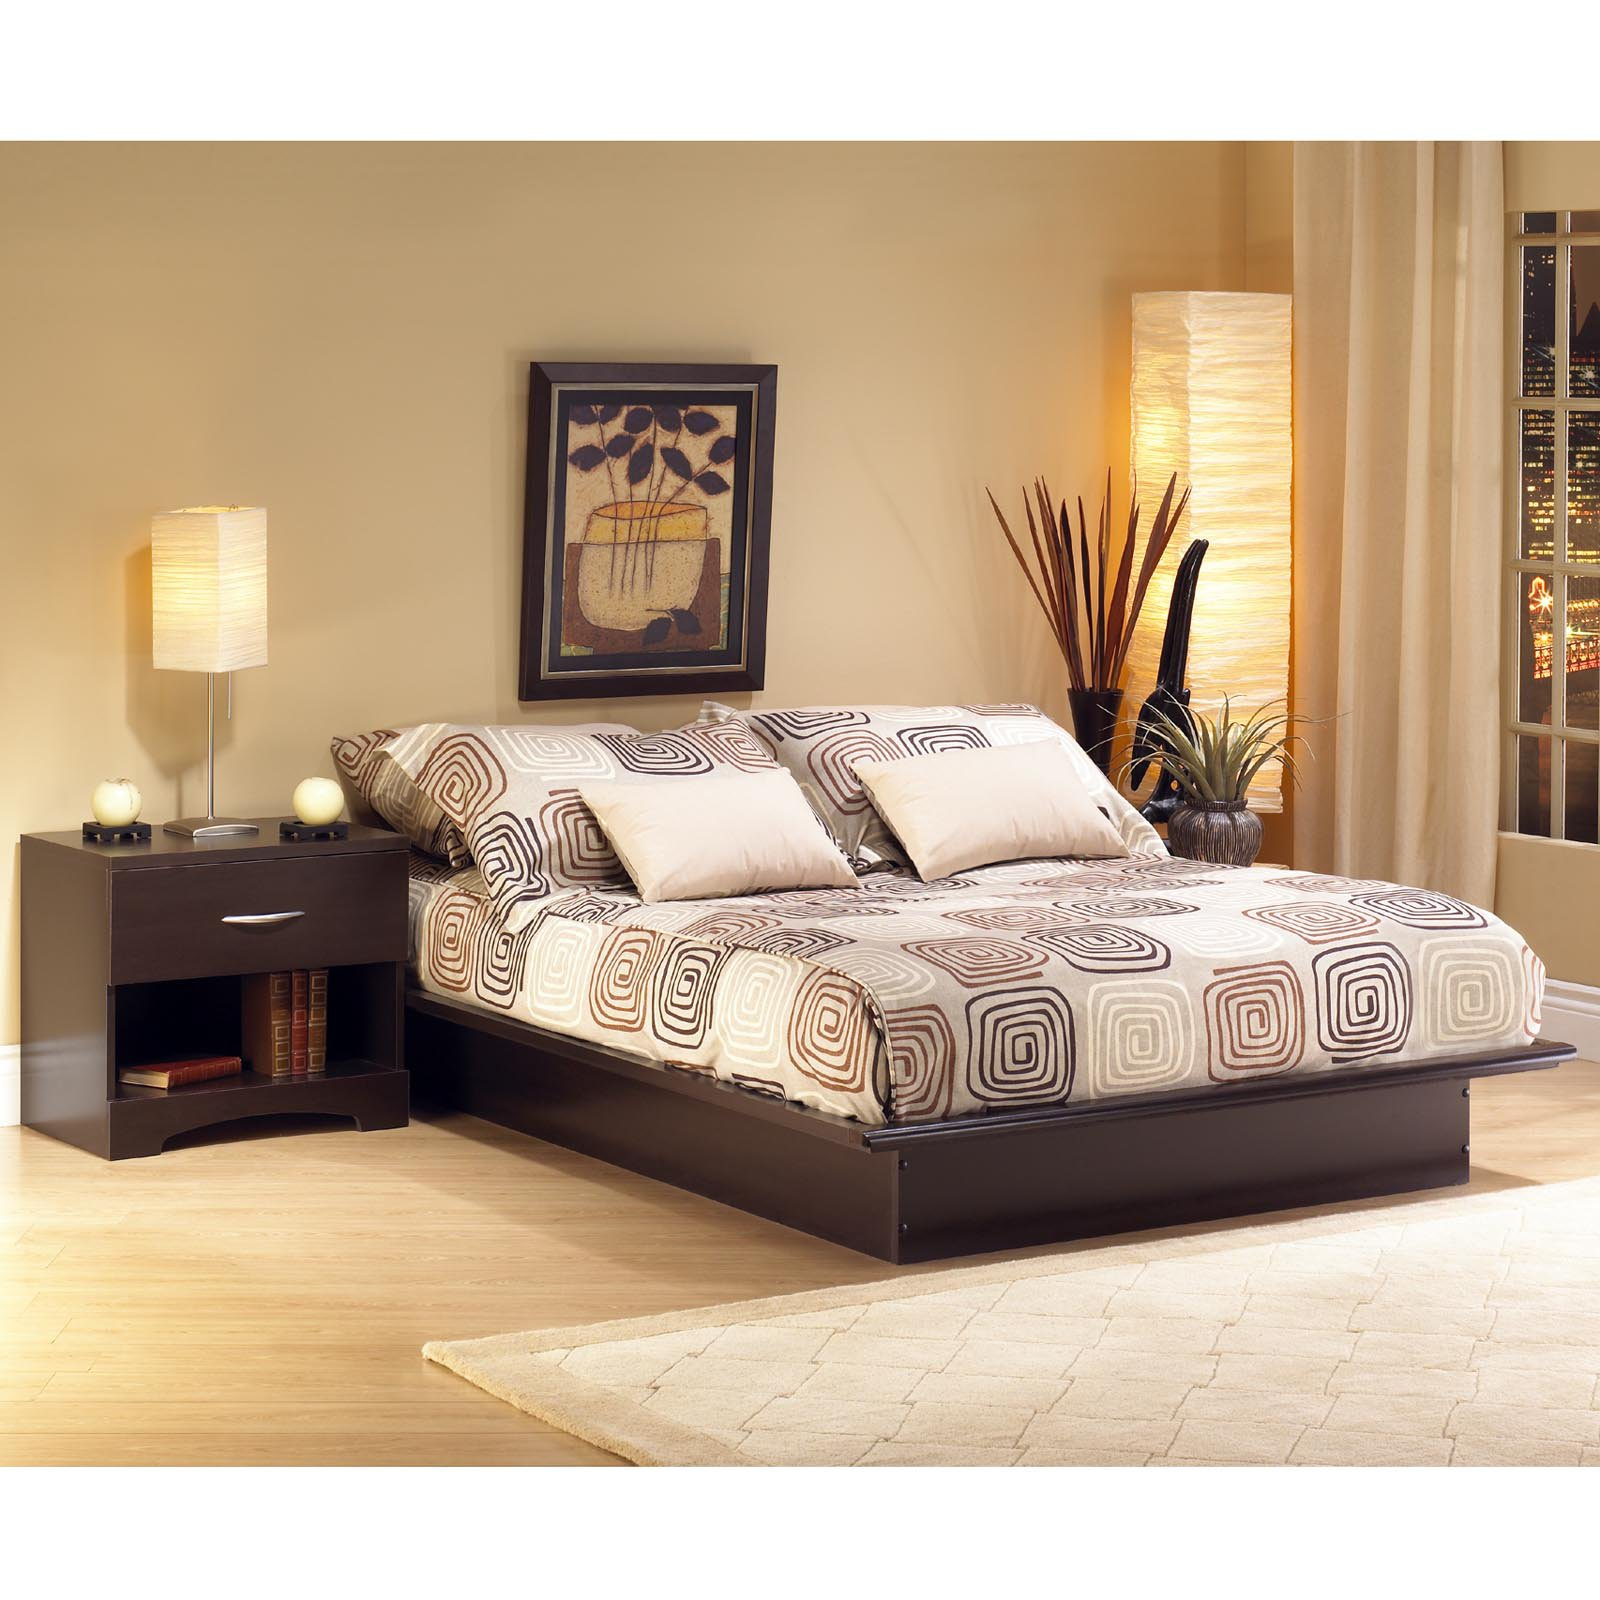 South Shore Step One Queen Platform Bed (60''), Chocolate